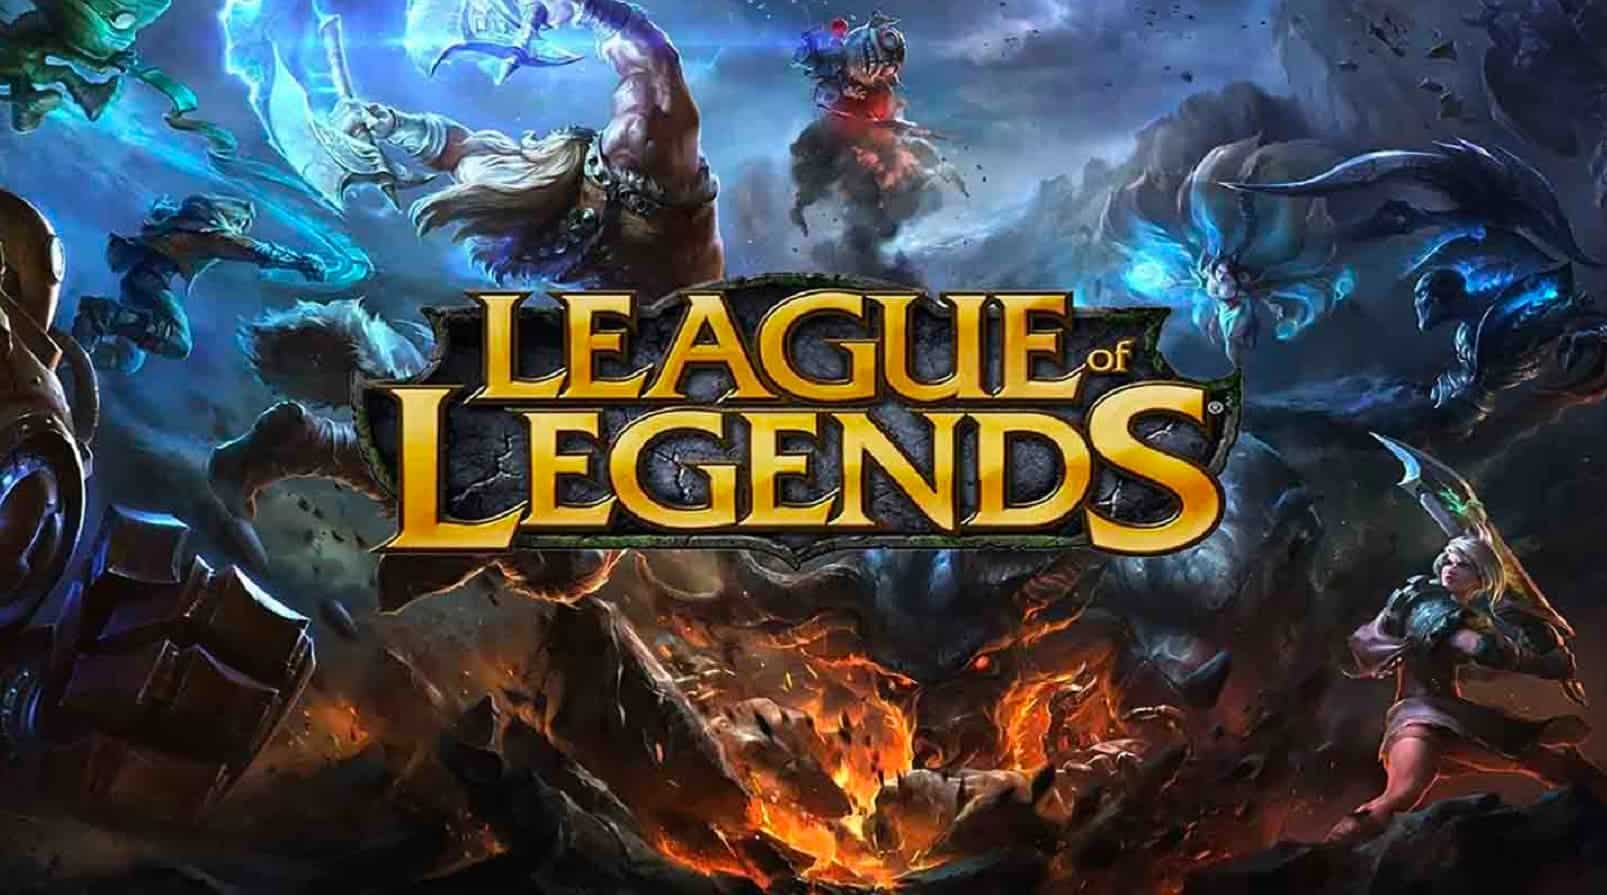 Legends of Legends Best Online Games